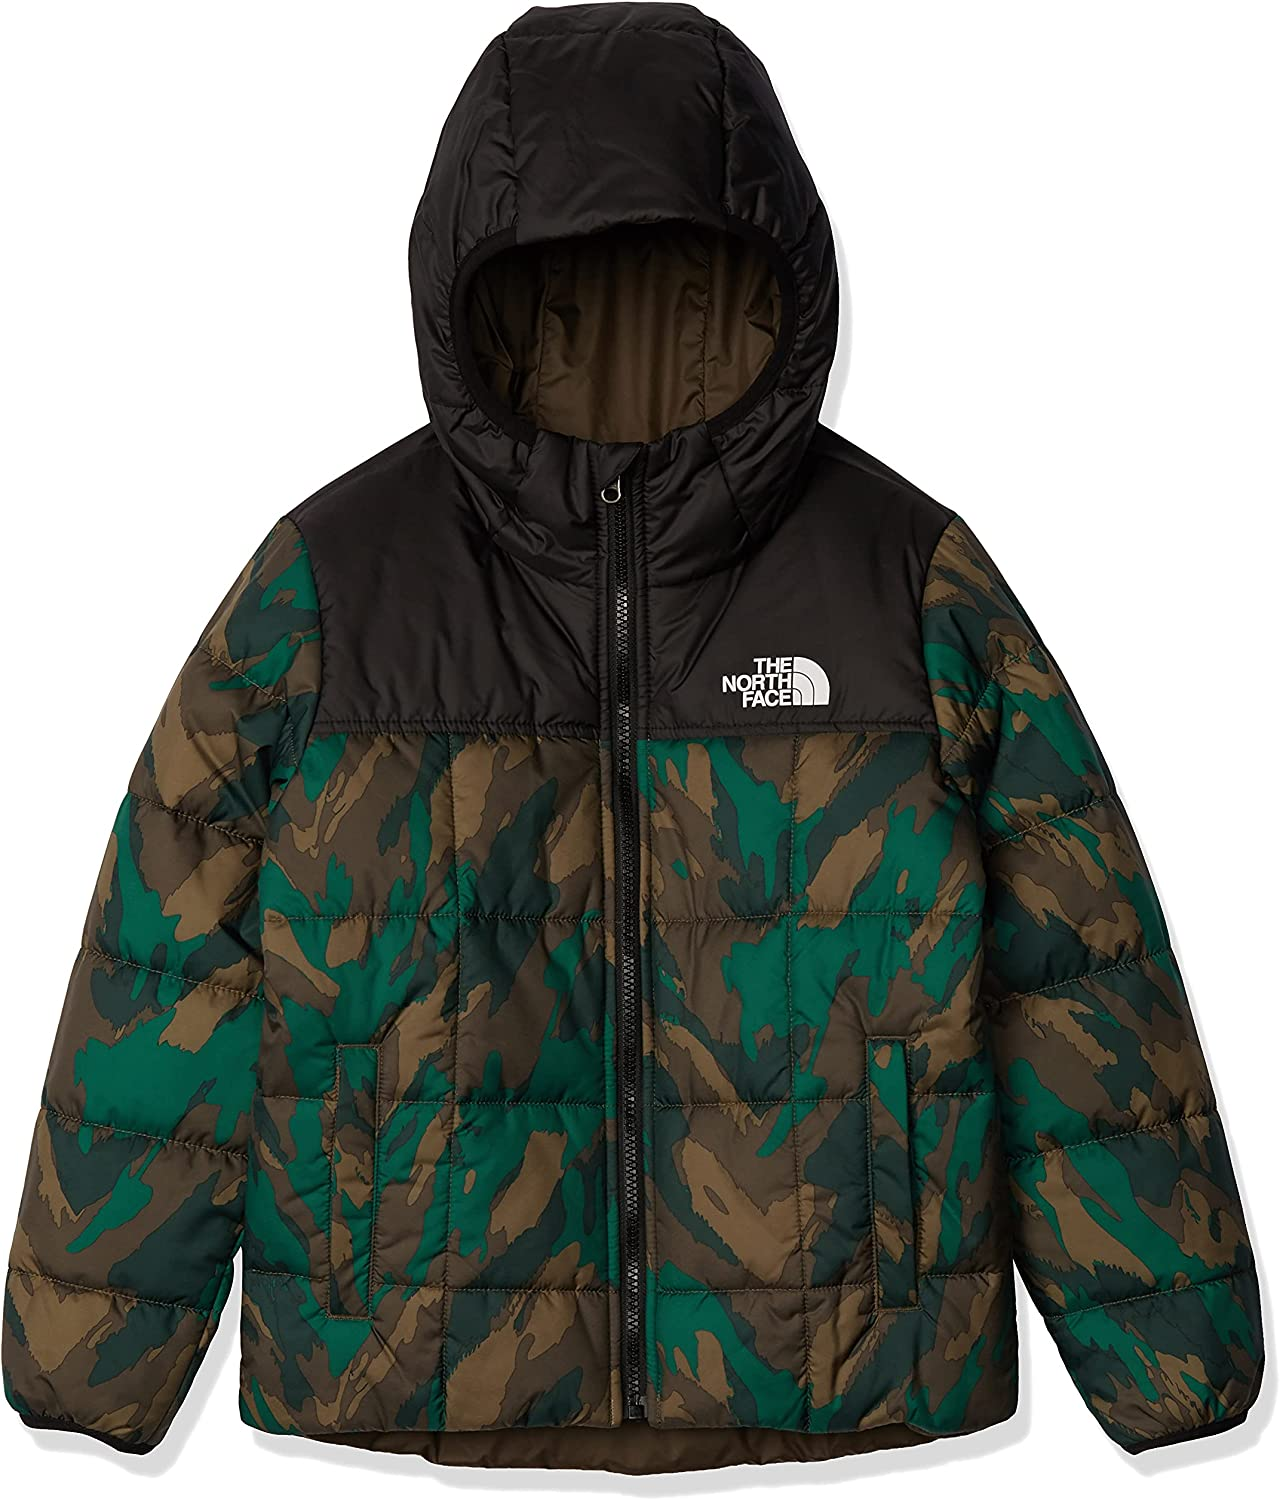 The North Face Little Kids/Big Kids Boys' Reversible Perrito Jacket : Clothing, Shoes & Jewelry